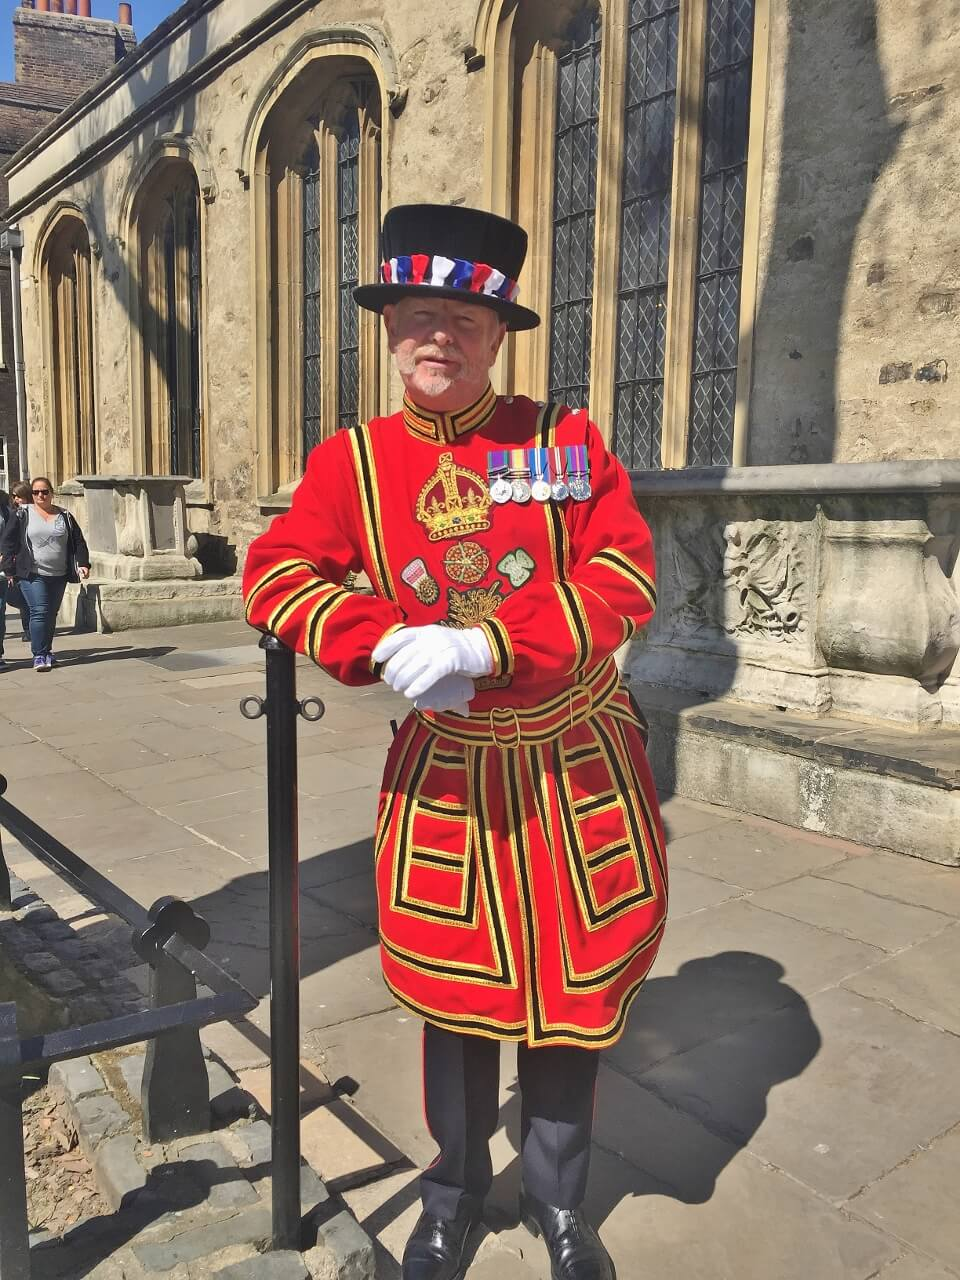 Beefeater in full dress uniform